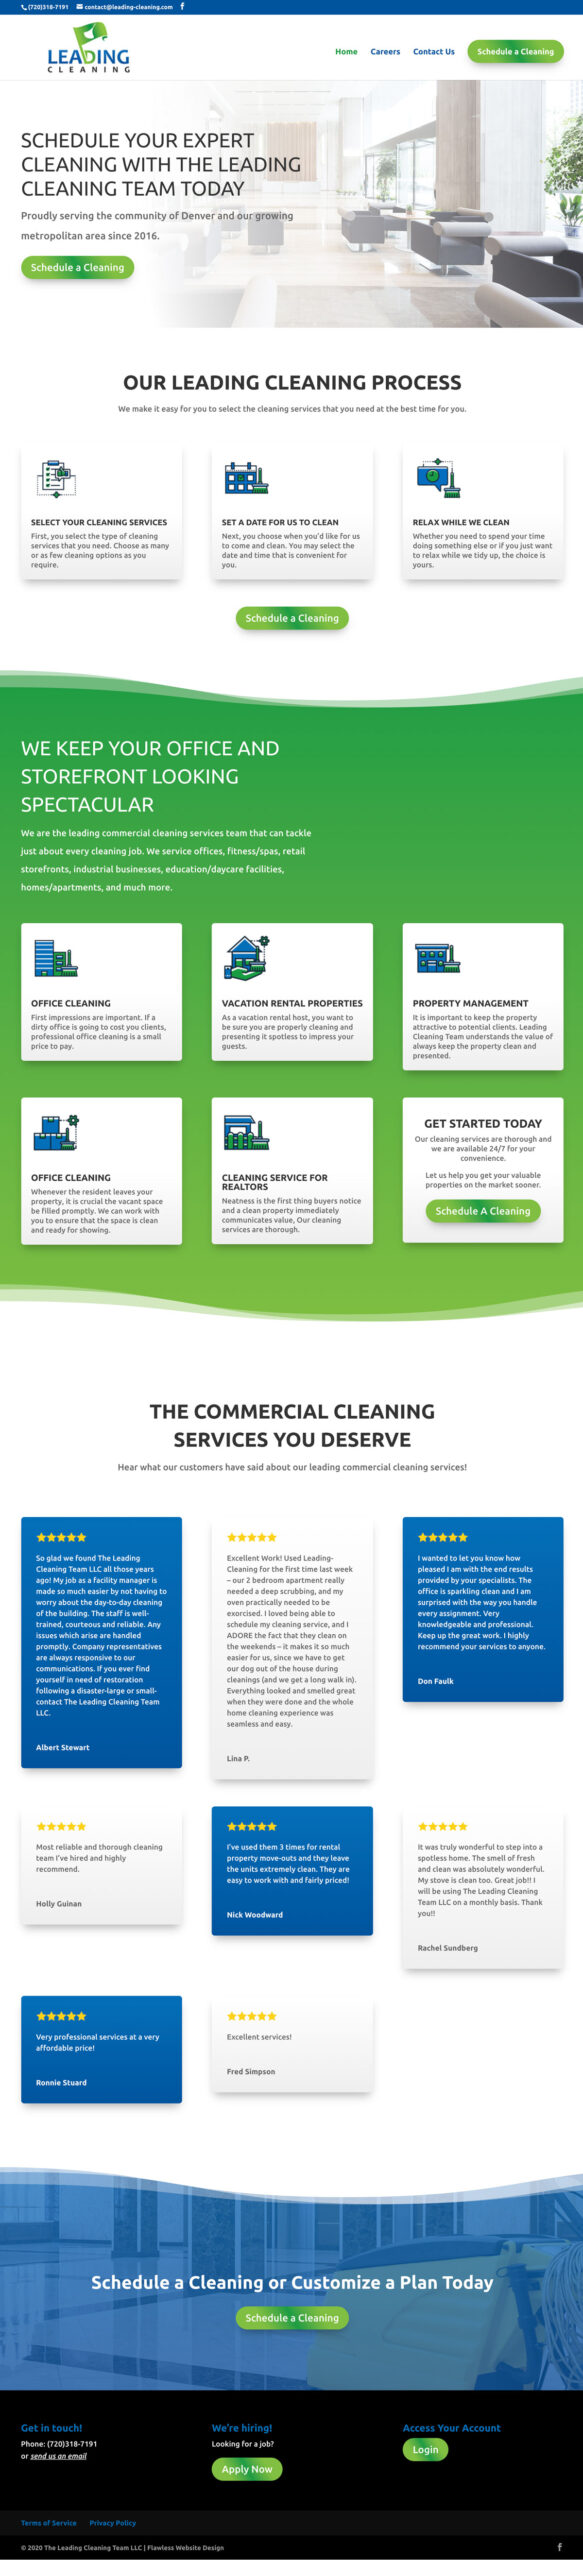 The Leading Cleaning Team website design